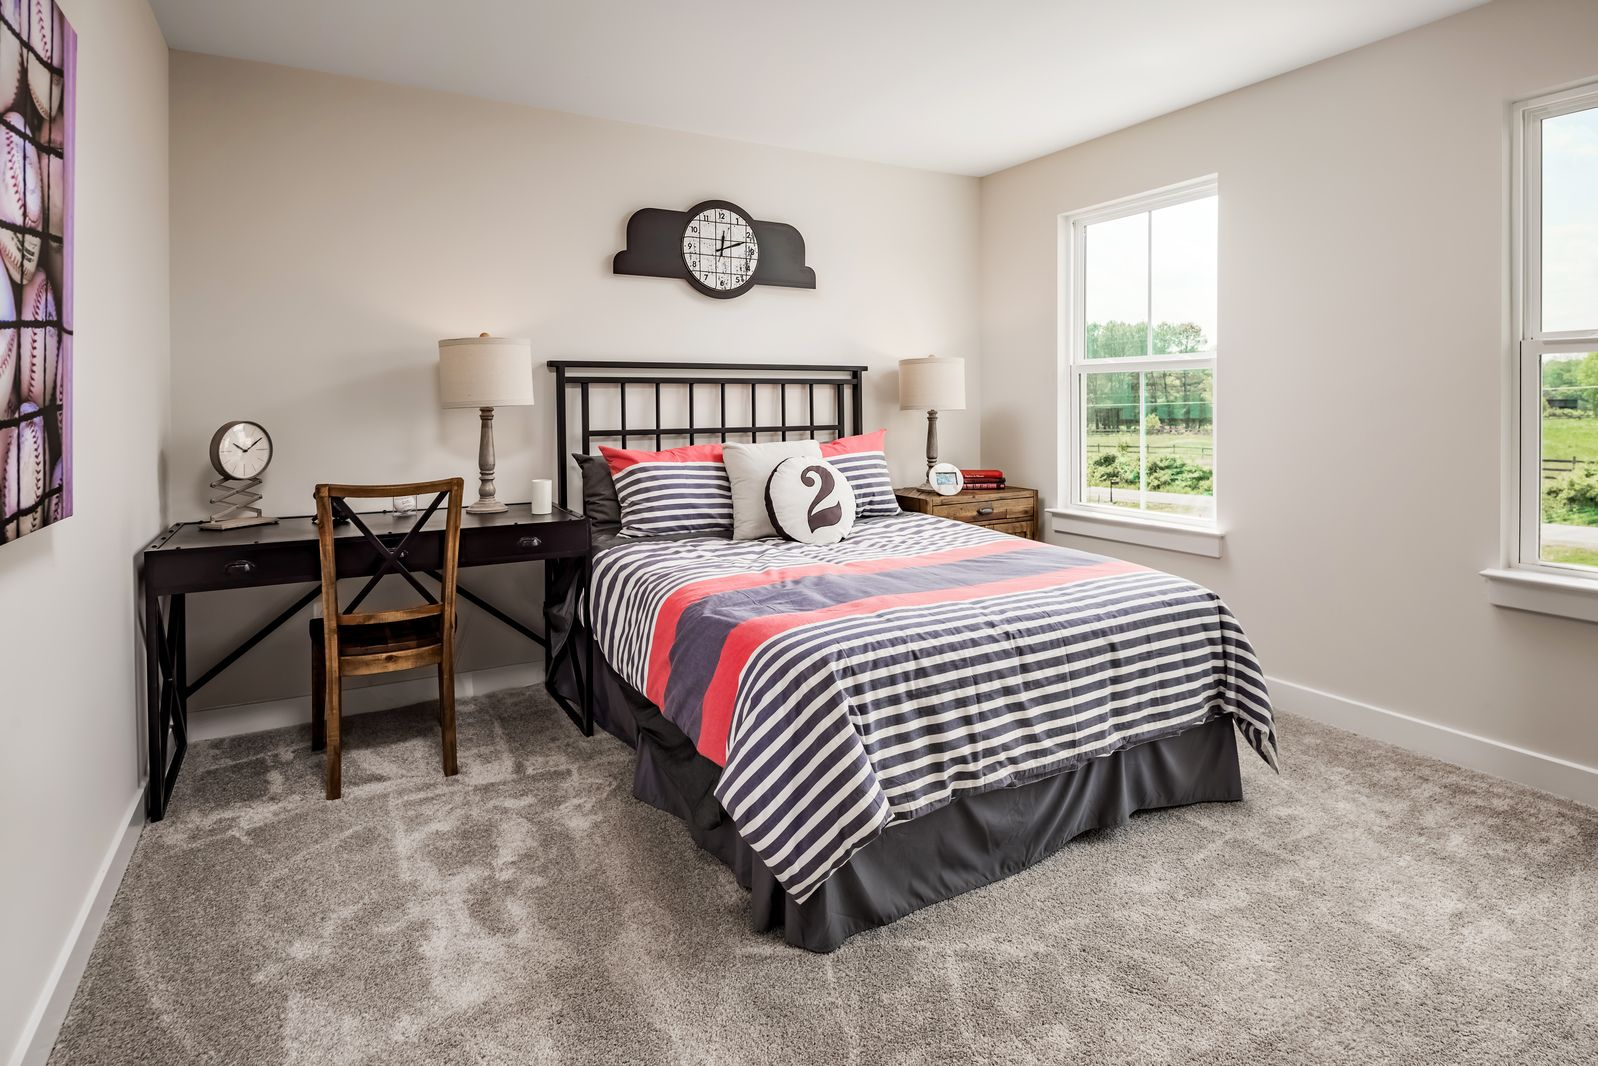 Bedroom featured in the York By Ryan Homes in Akron, OH